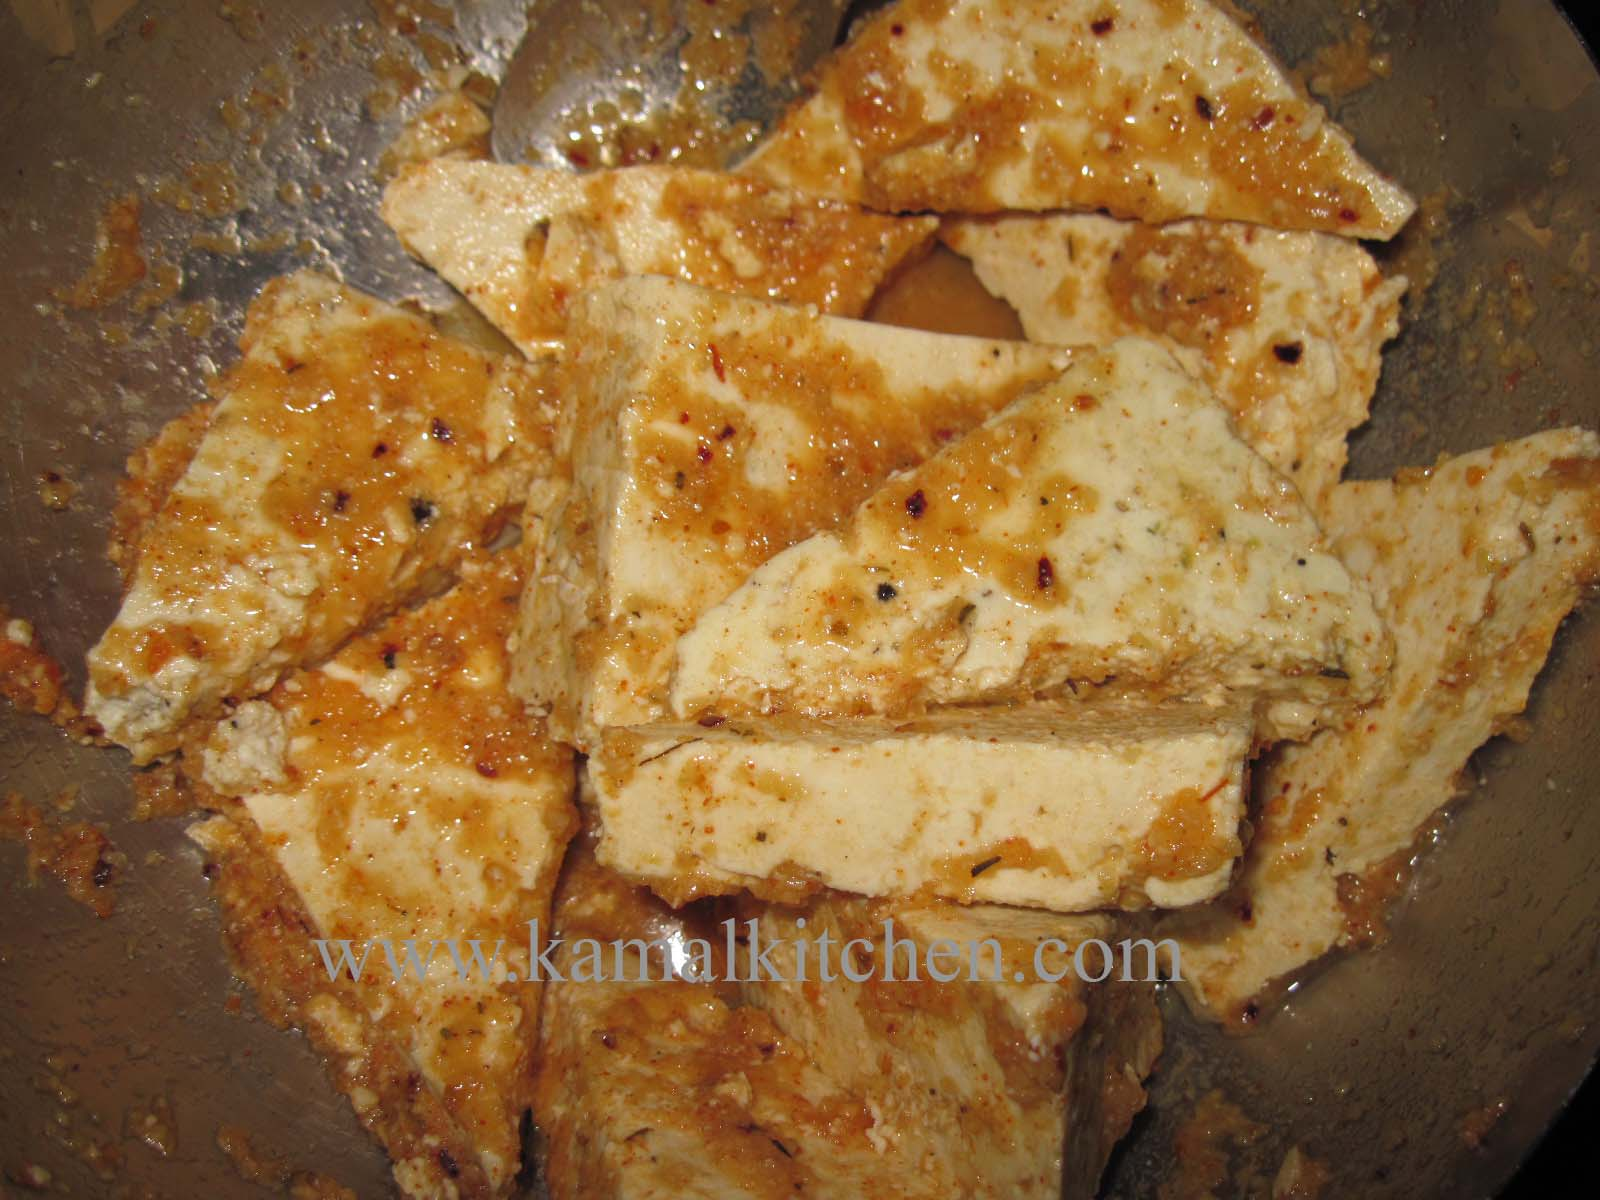 Grilled Tofu with a Honey Chipotle Barbecue Sauce – Smokin' sweet